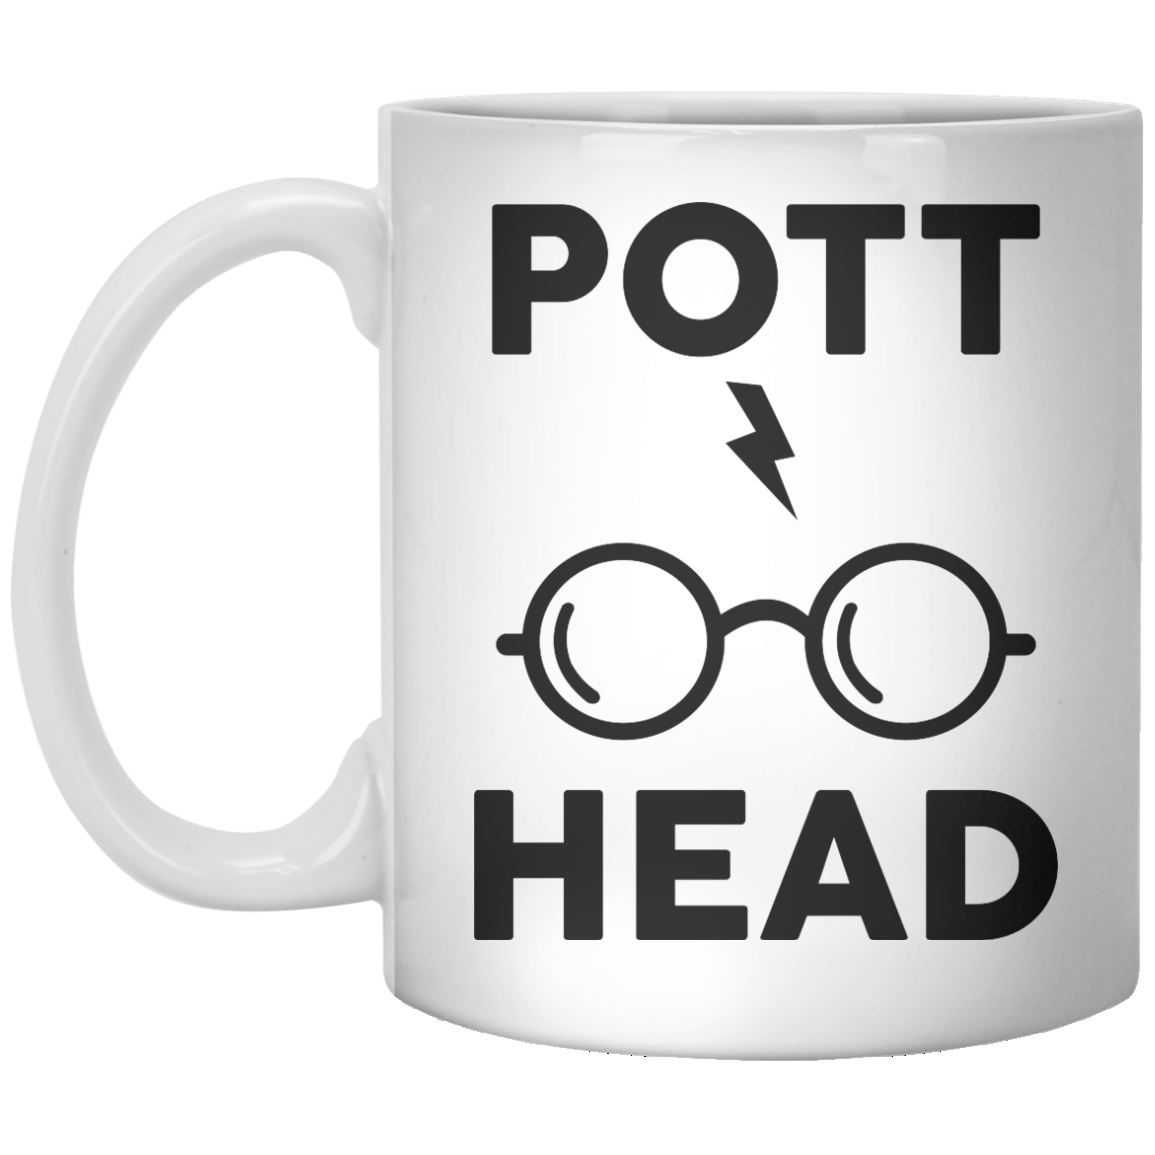 Pott Head - Shirtoopia